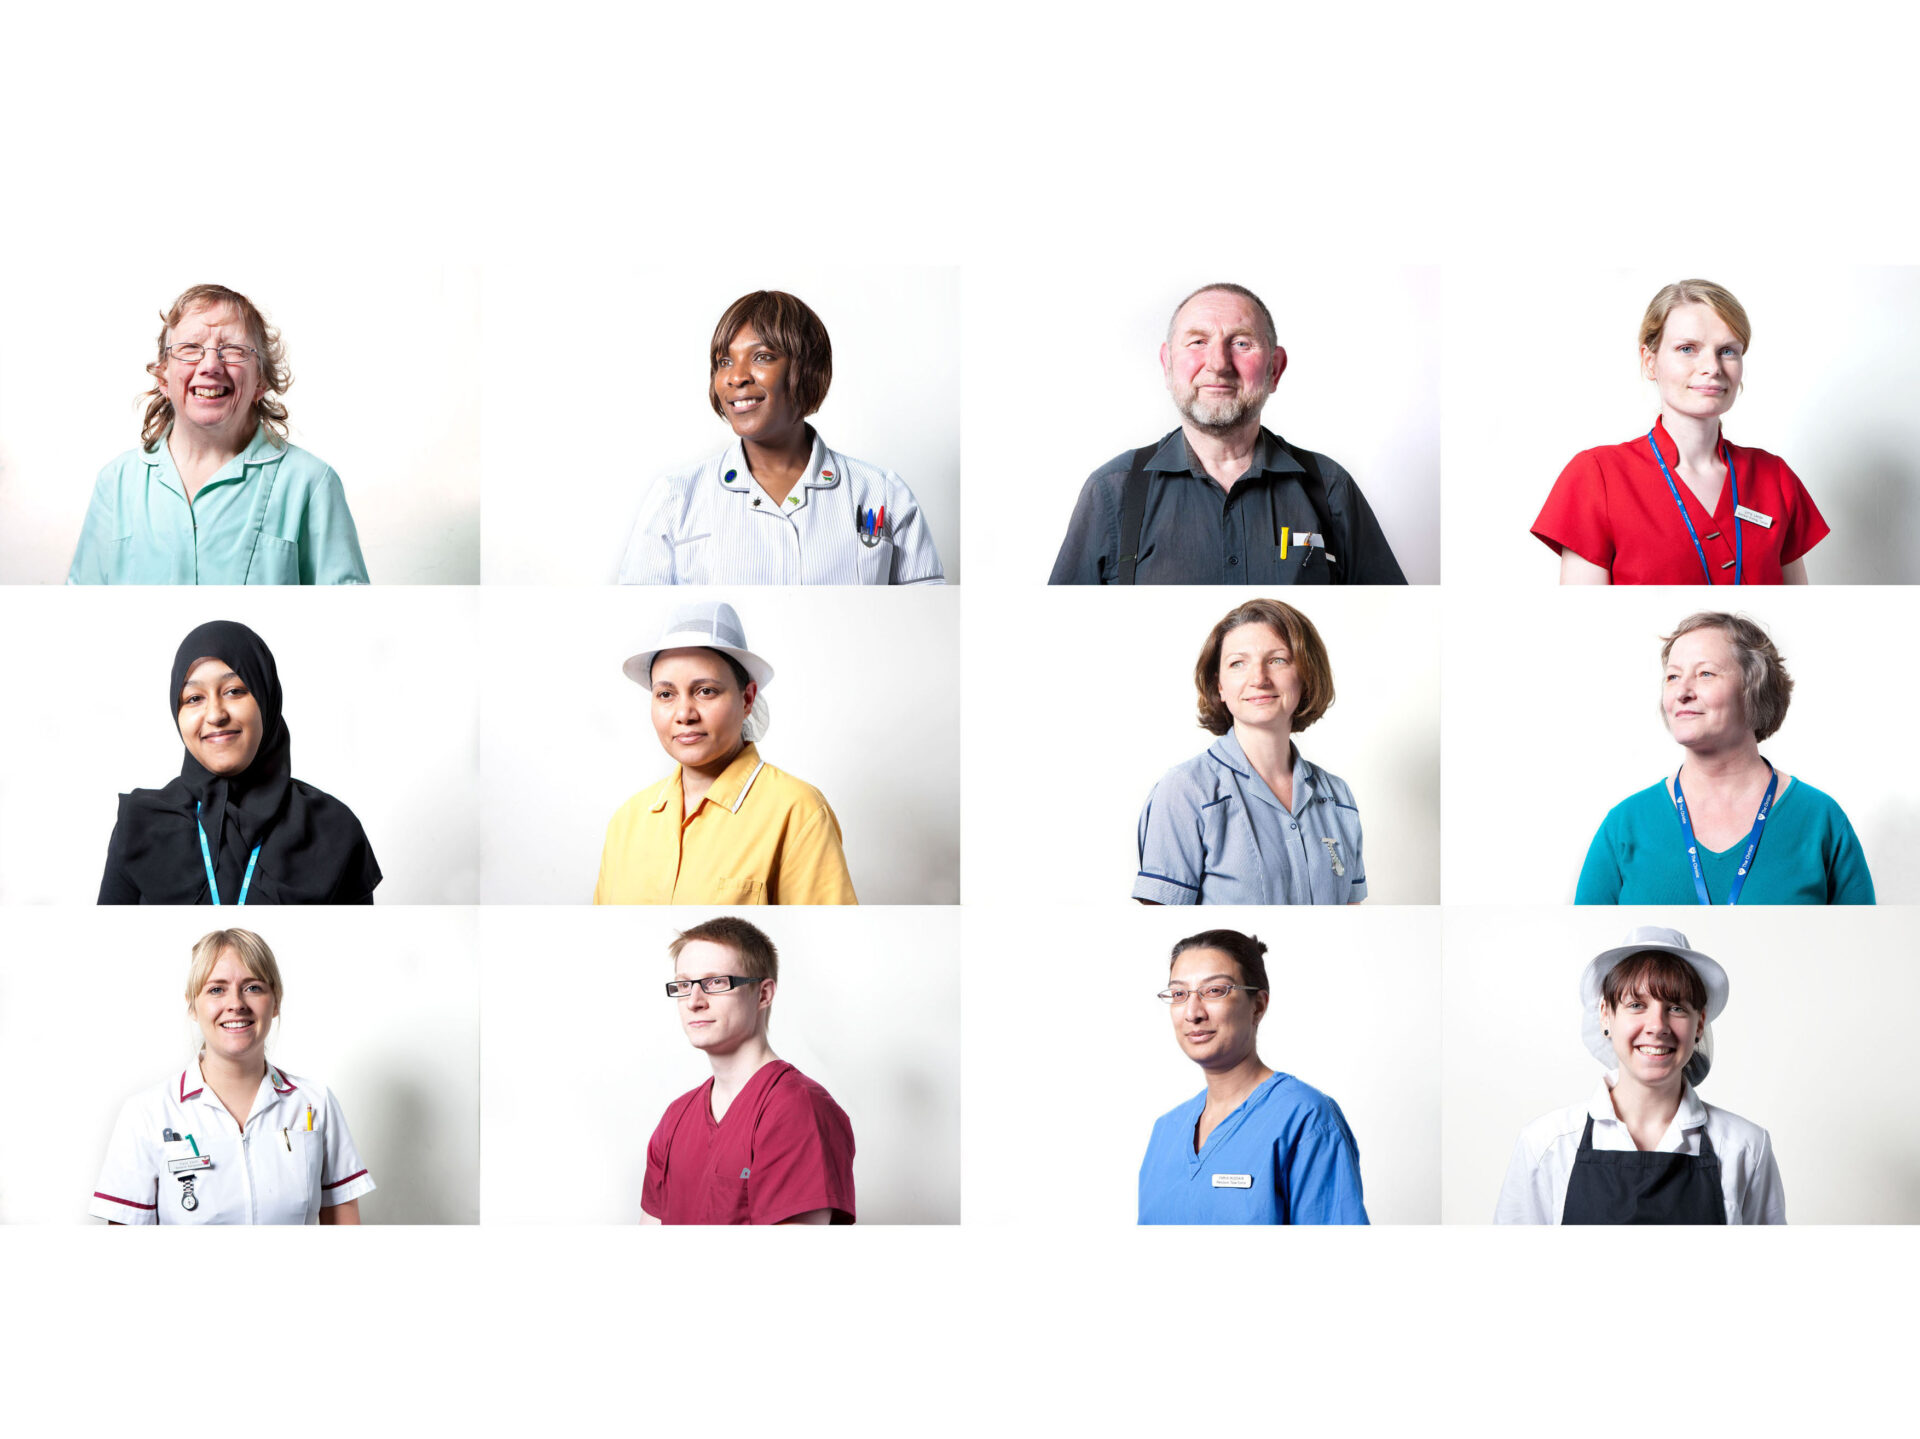 Christie hospital – pictures of hospital staff – NHS National Health Service – Shaw & Shaw Photography campaign – Shaw and Shaw advertising photographers